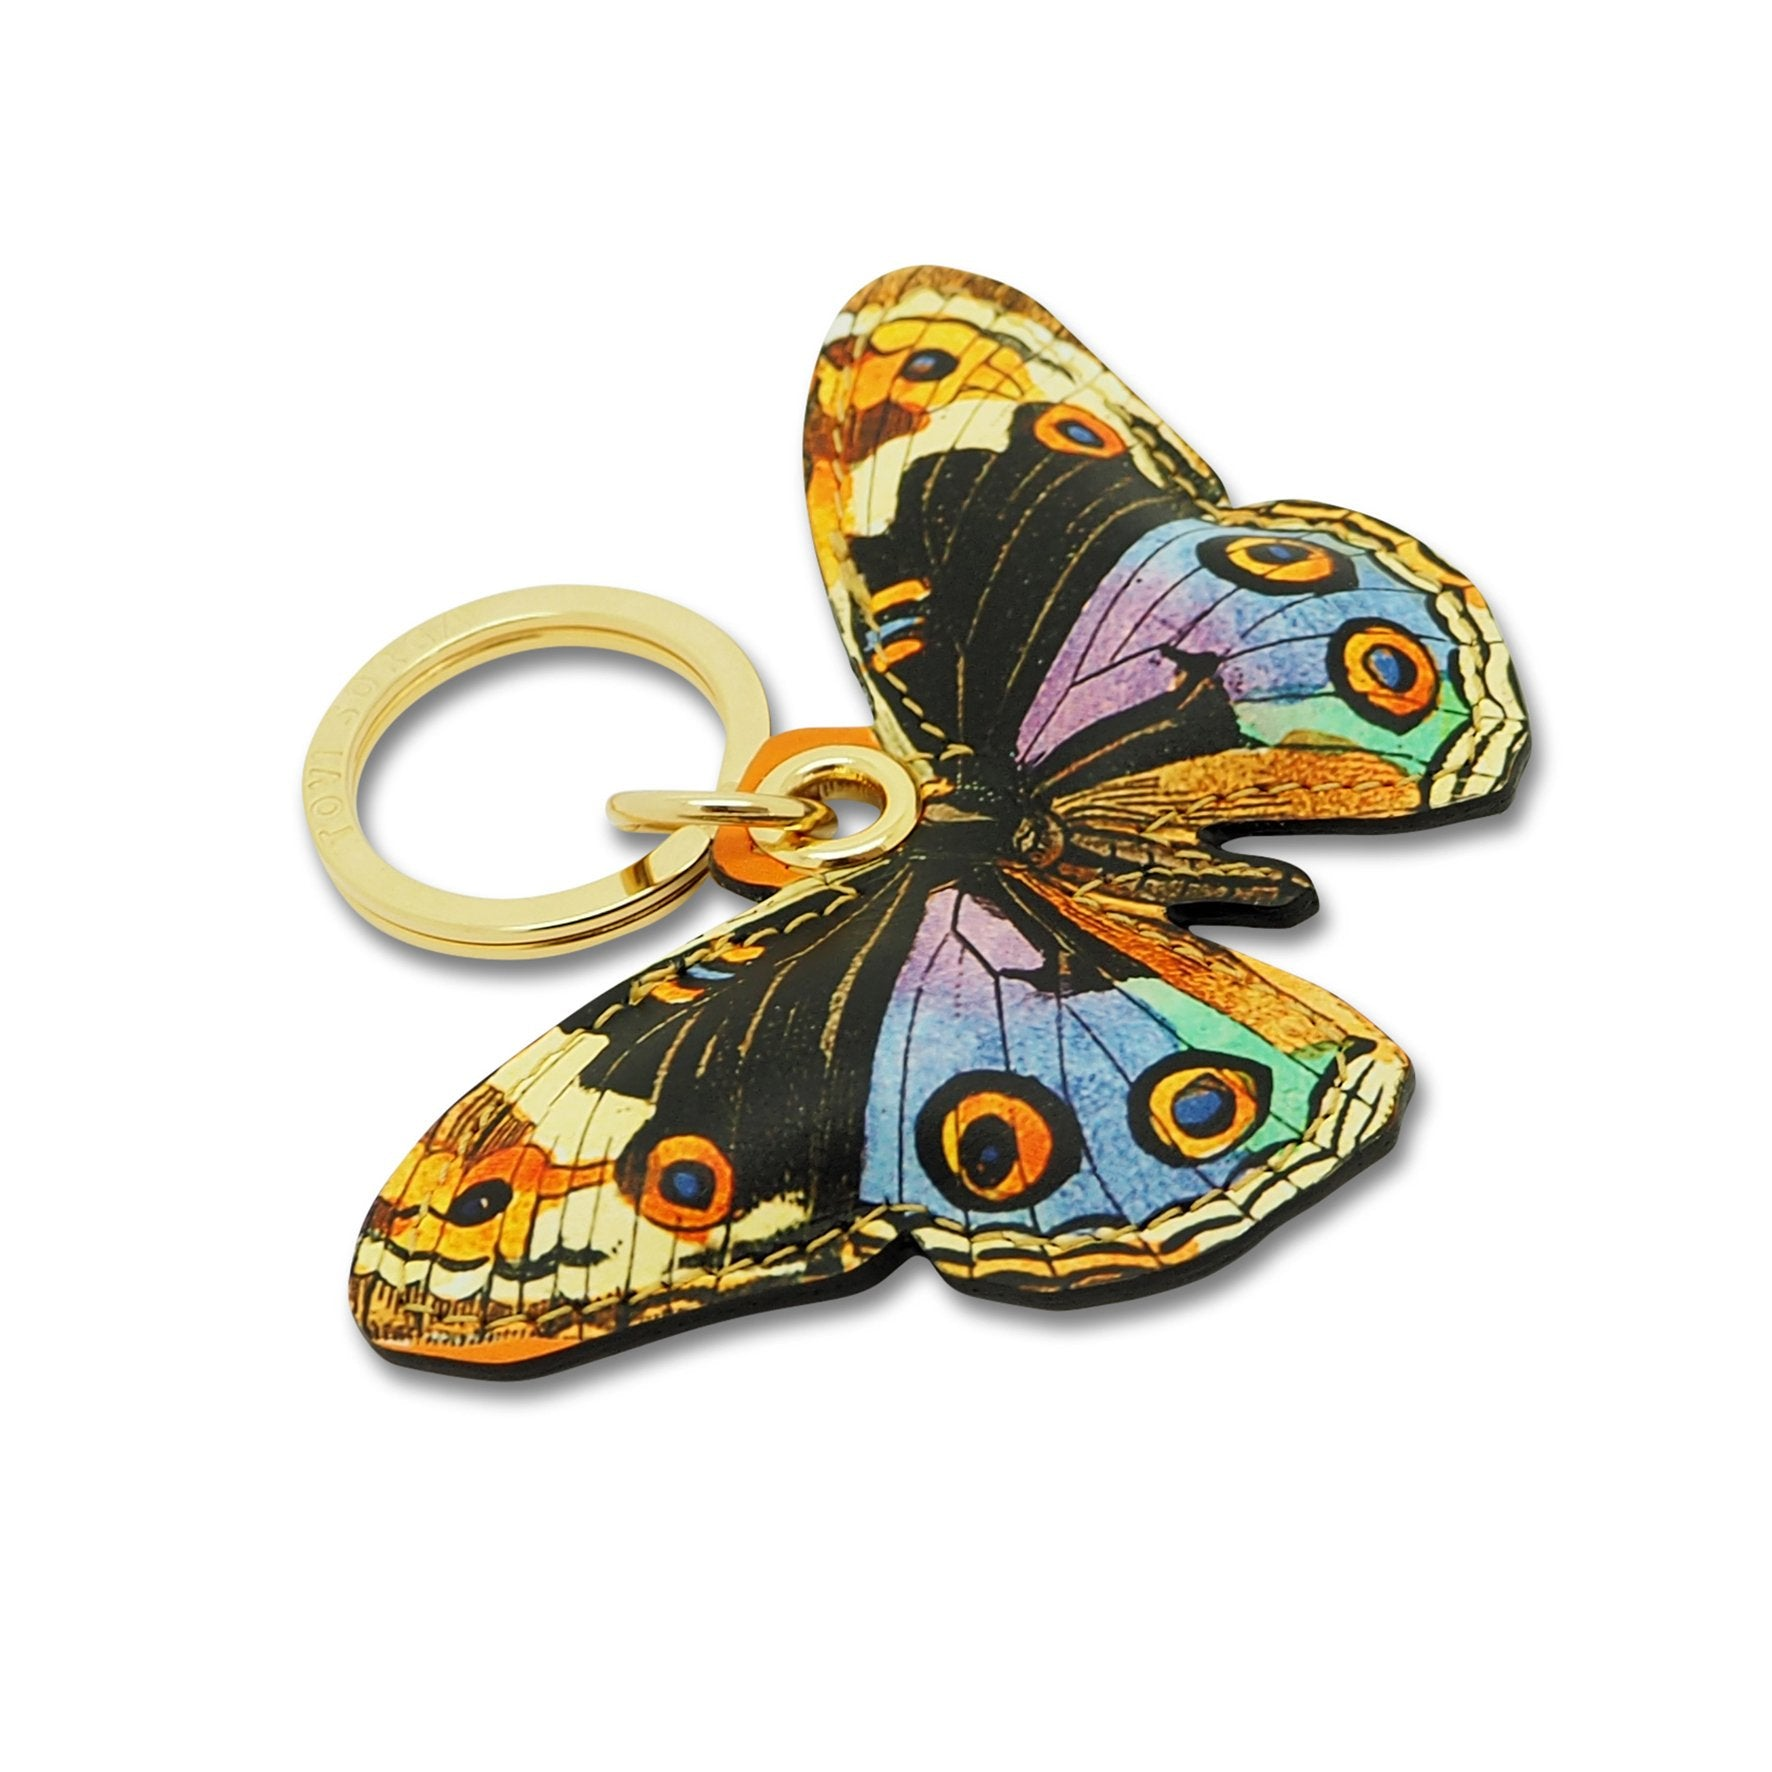 Leather Contactless Payment Key Charm - Multicolour Butterfly Tovi Sorga Multicolour